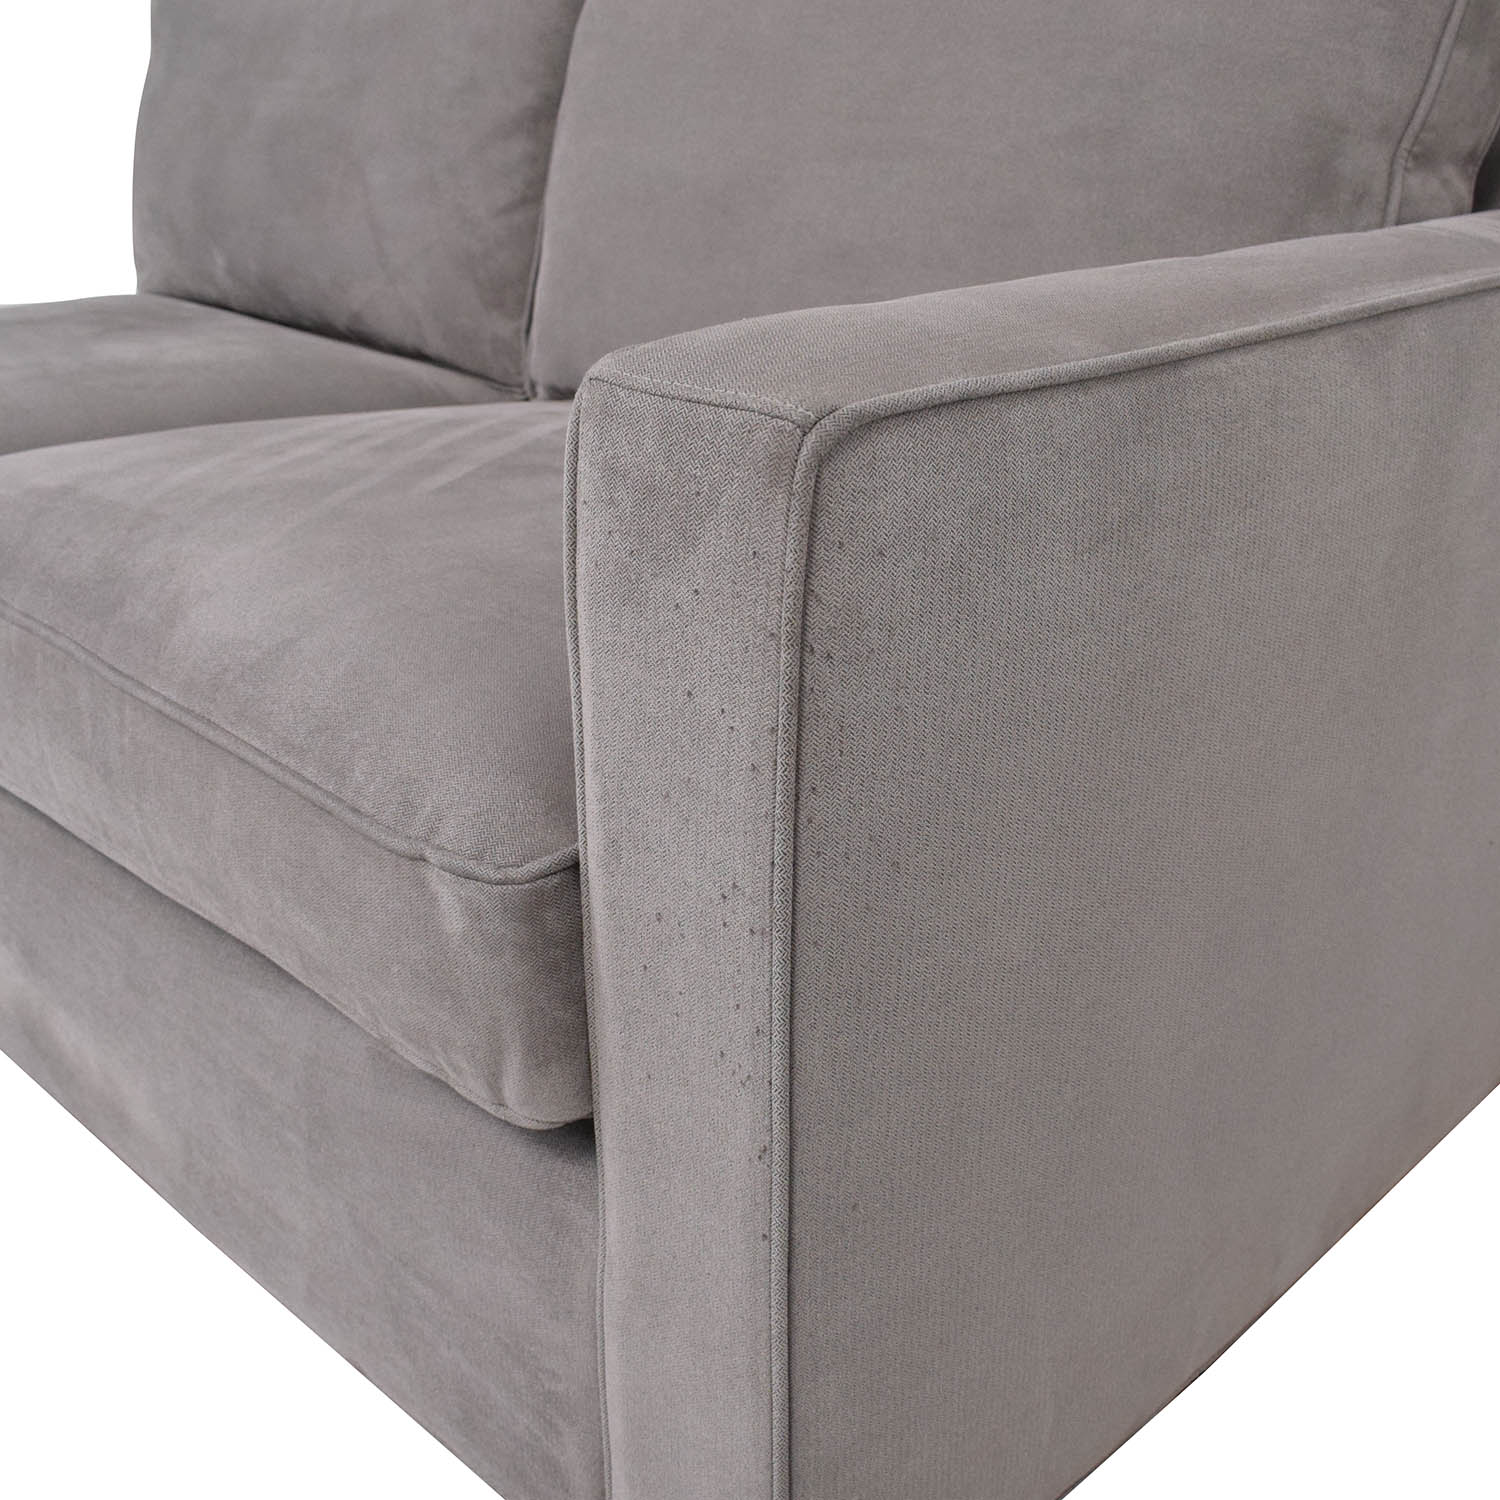 Crate & Barrel Crate & Barrel Axis II Two-Seat Section price